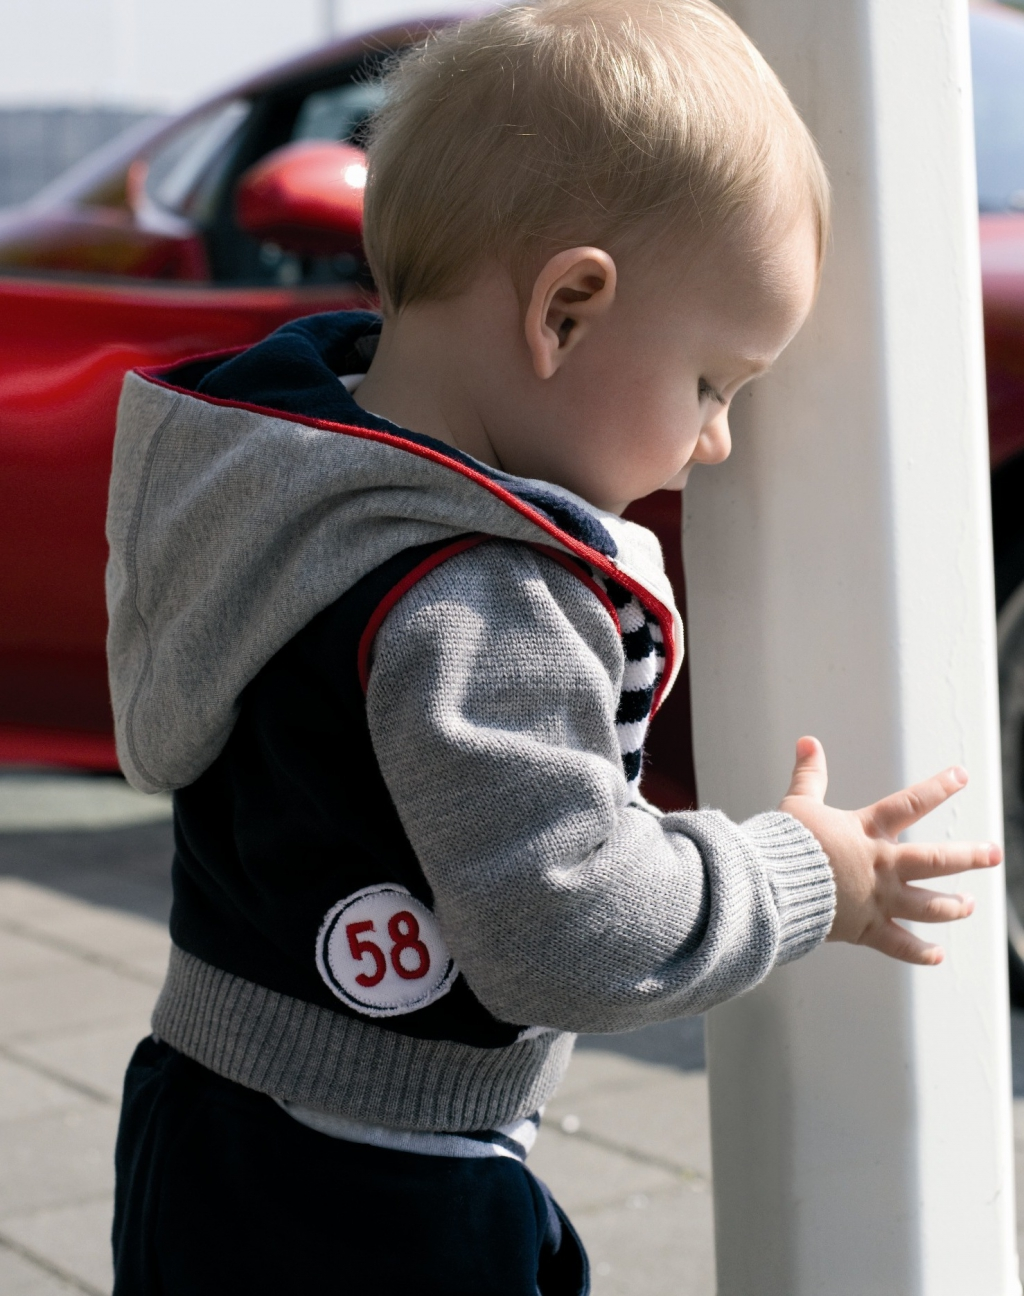 sfcollection a in on years passion twitter ferraristore am jul of nearly embodied status kids clothes ferrari